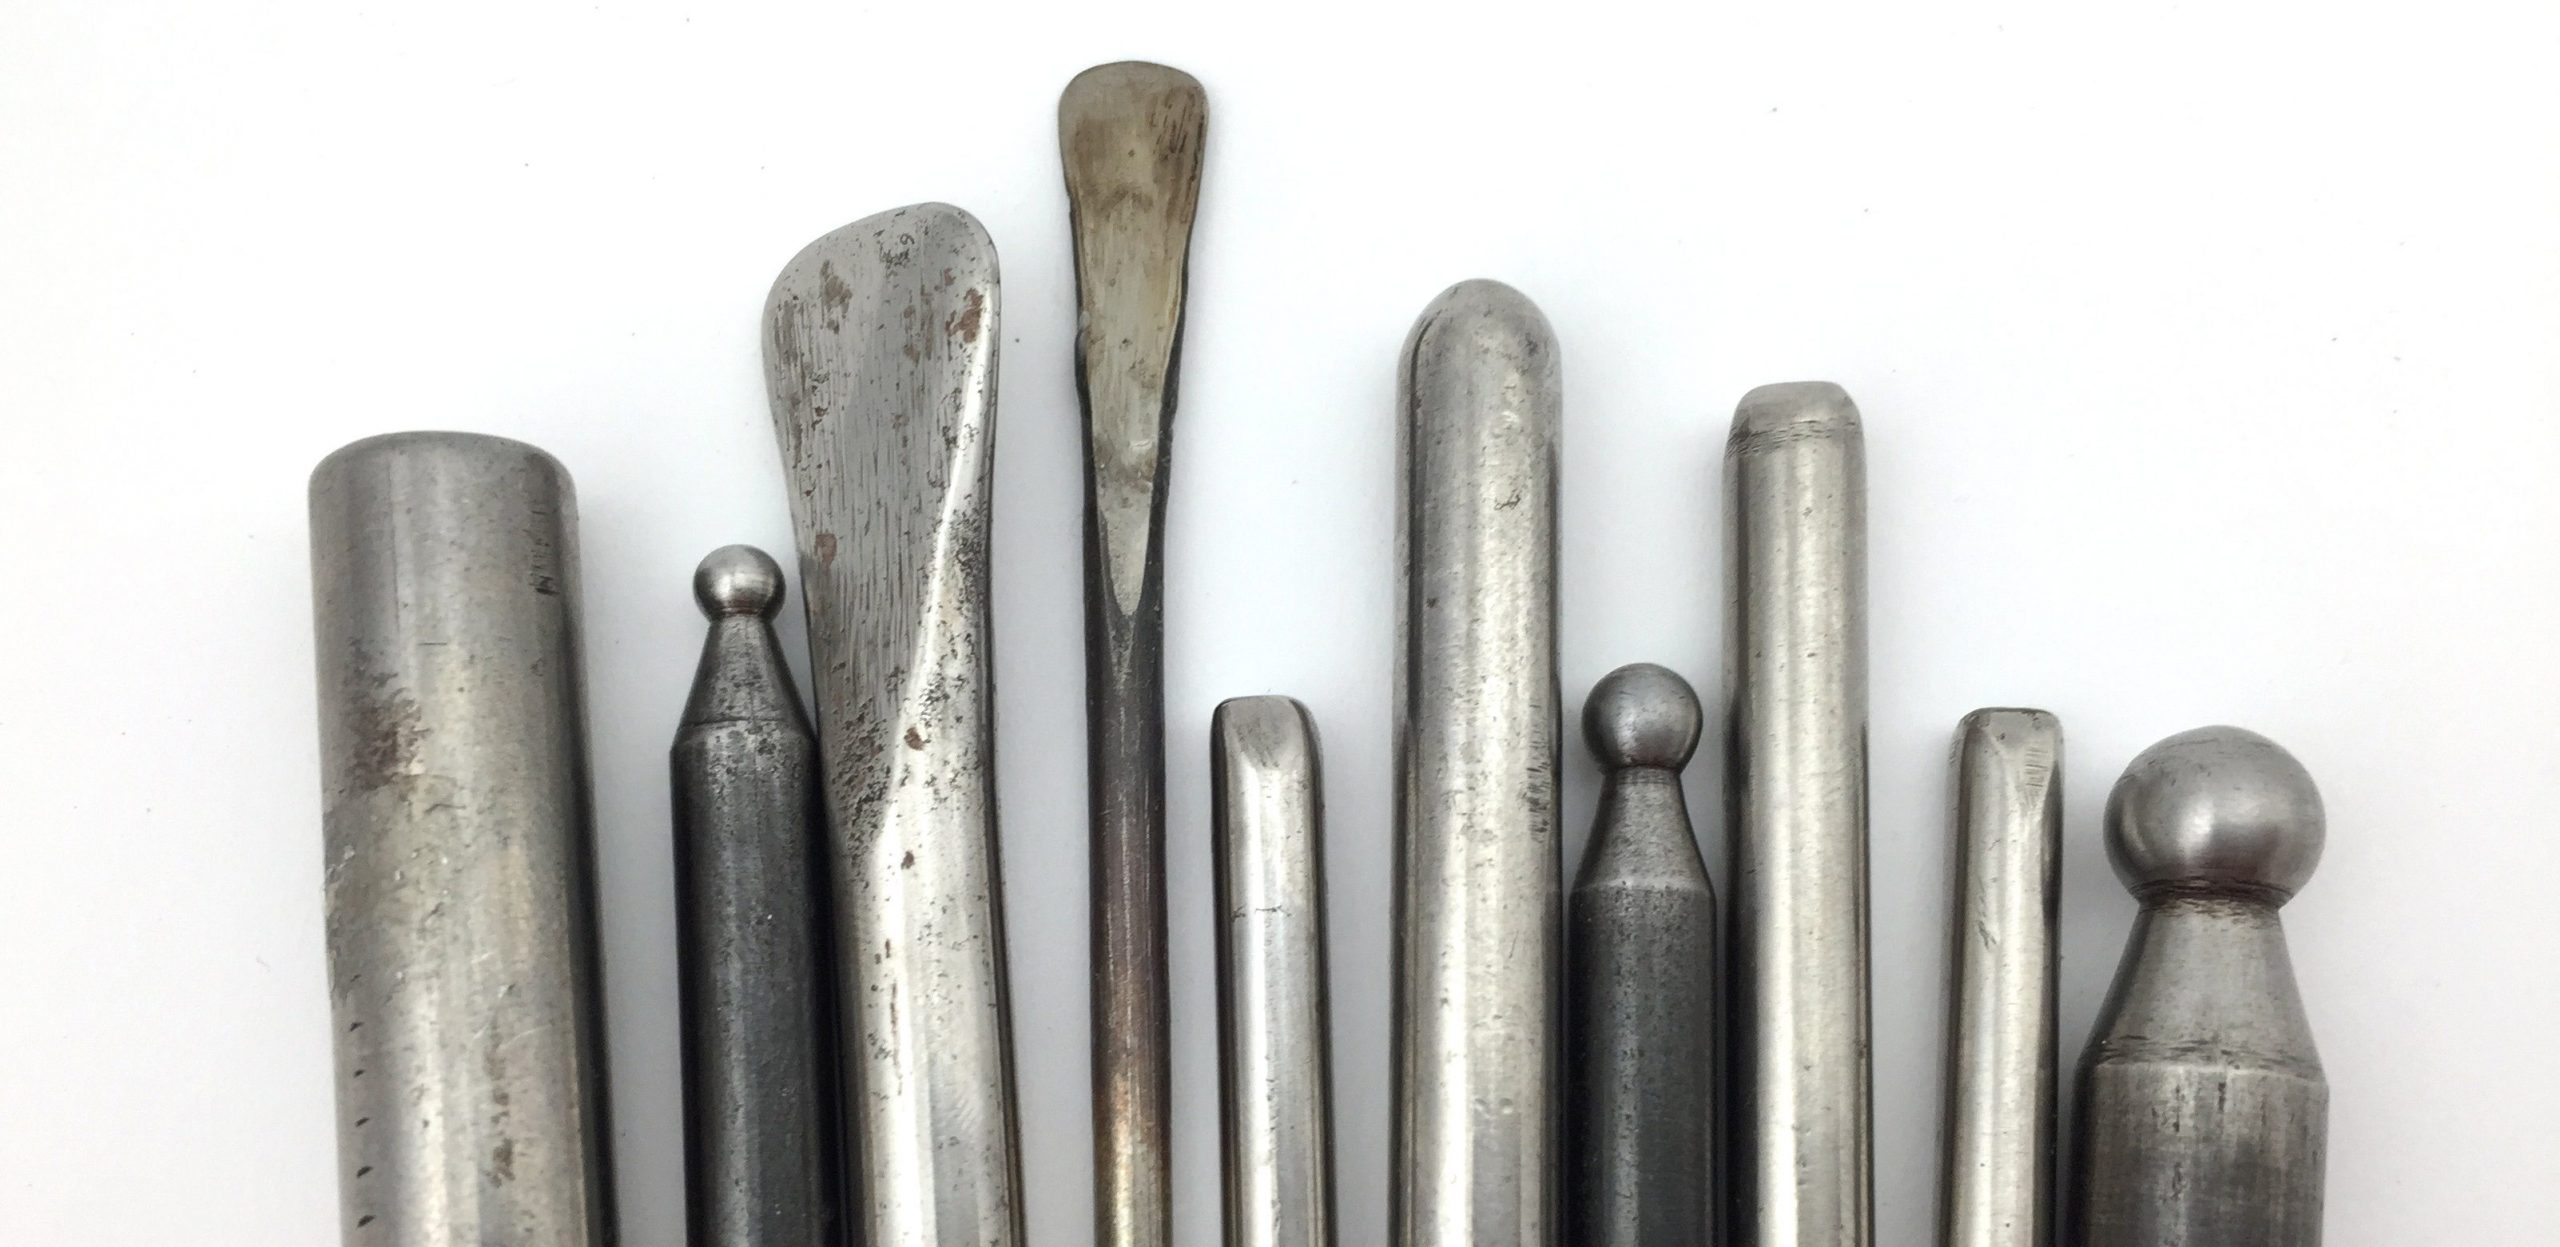 The tools for making jewellery